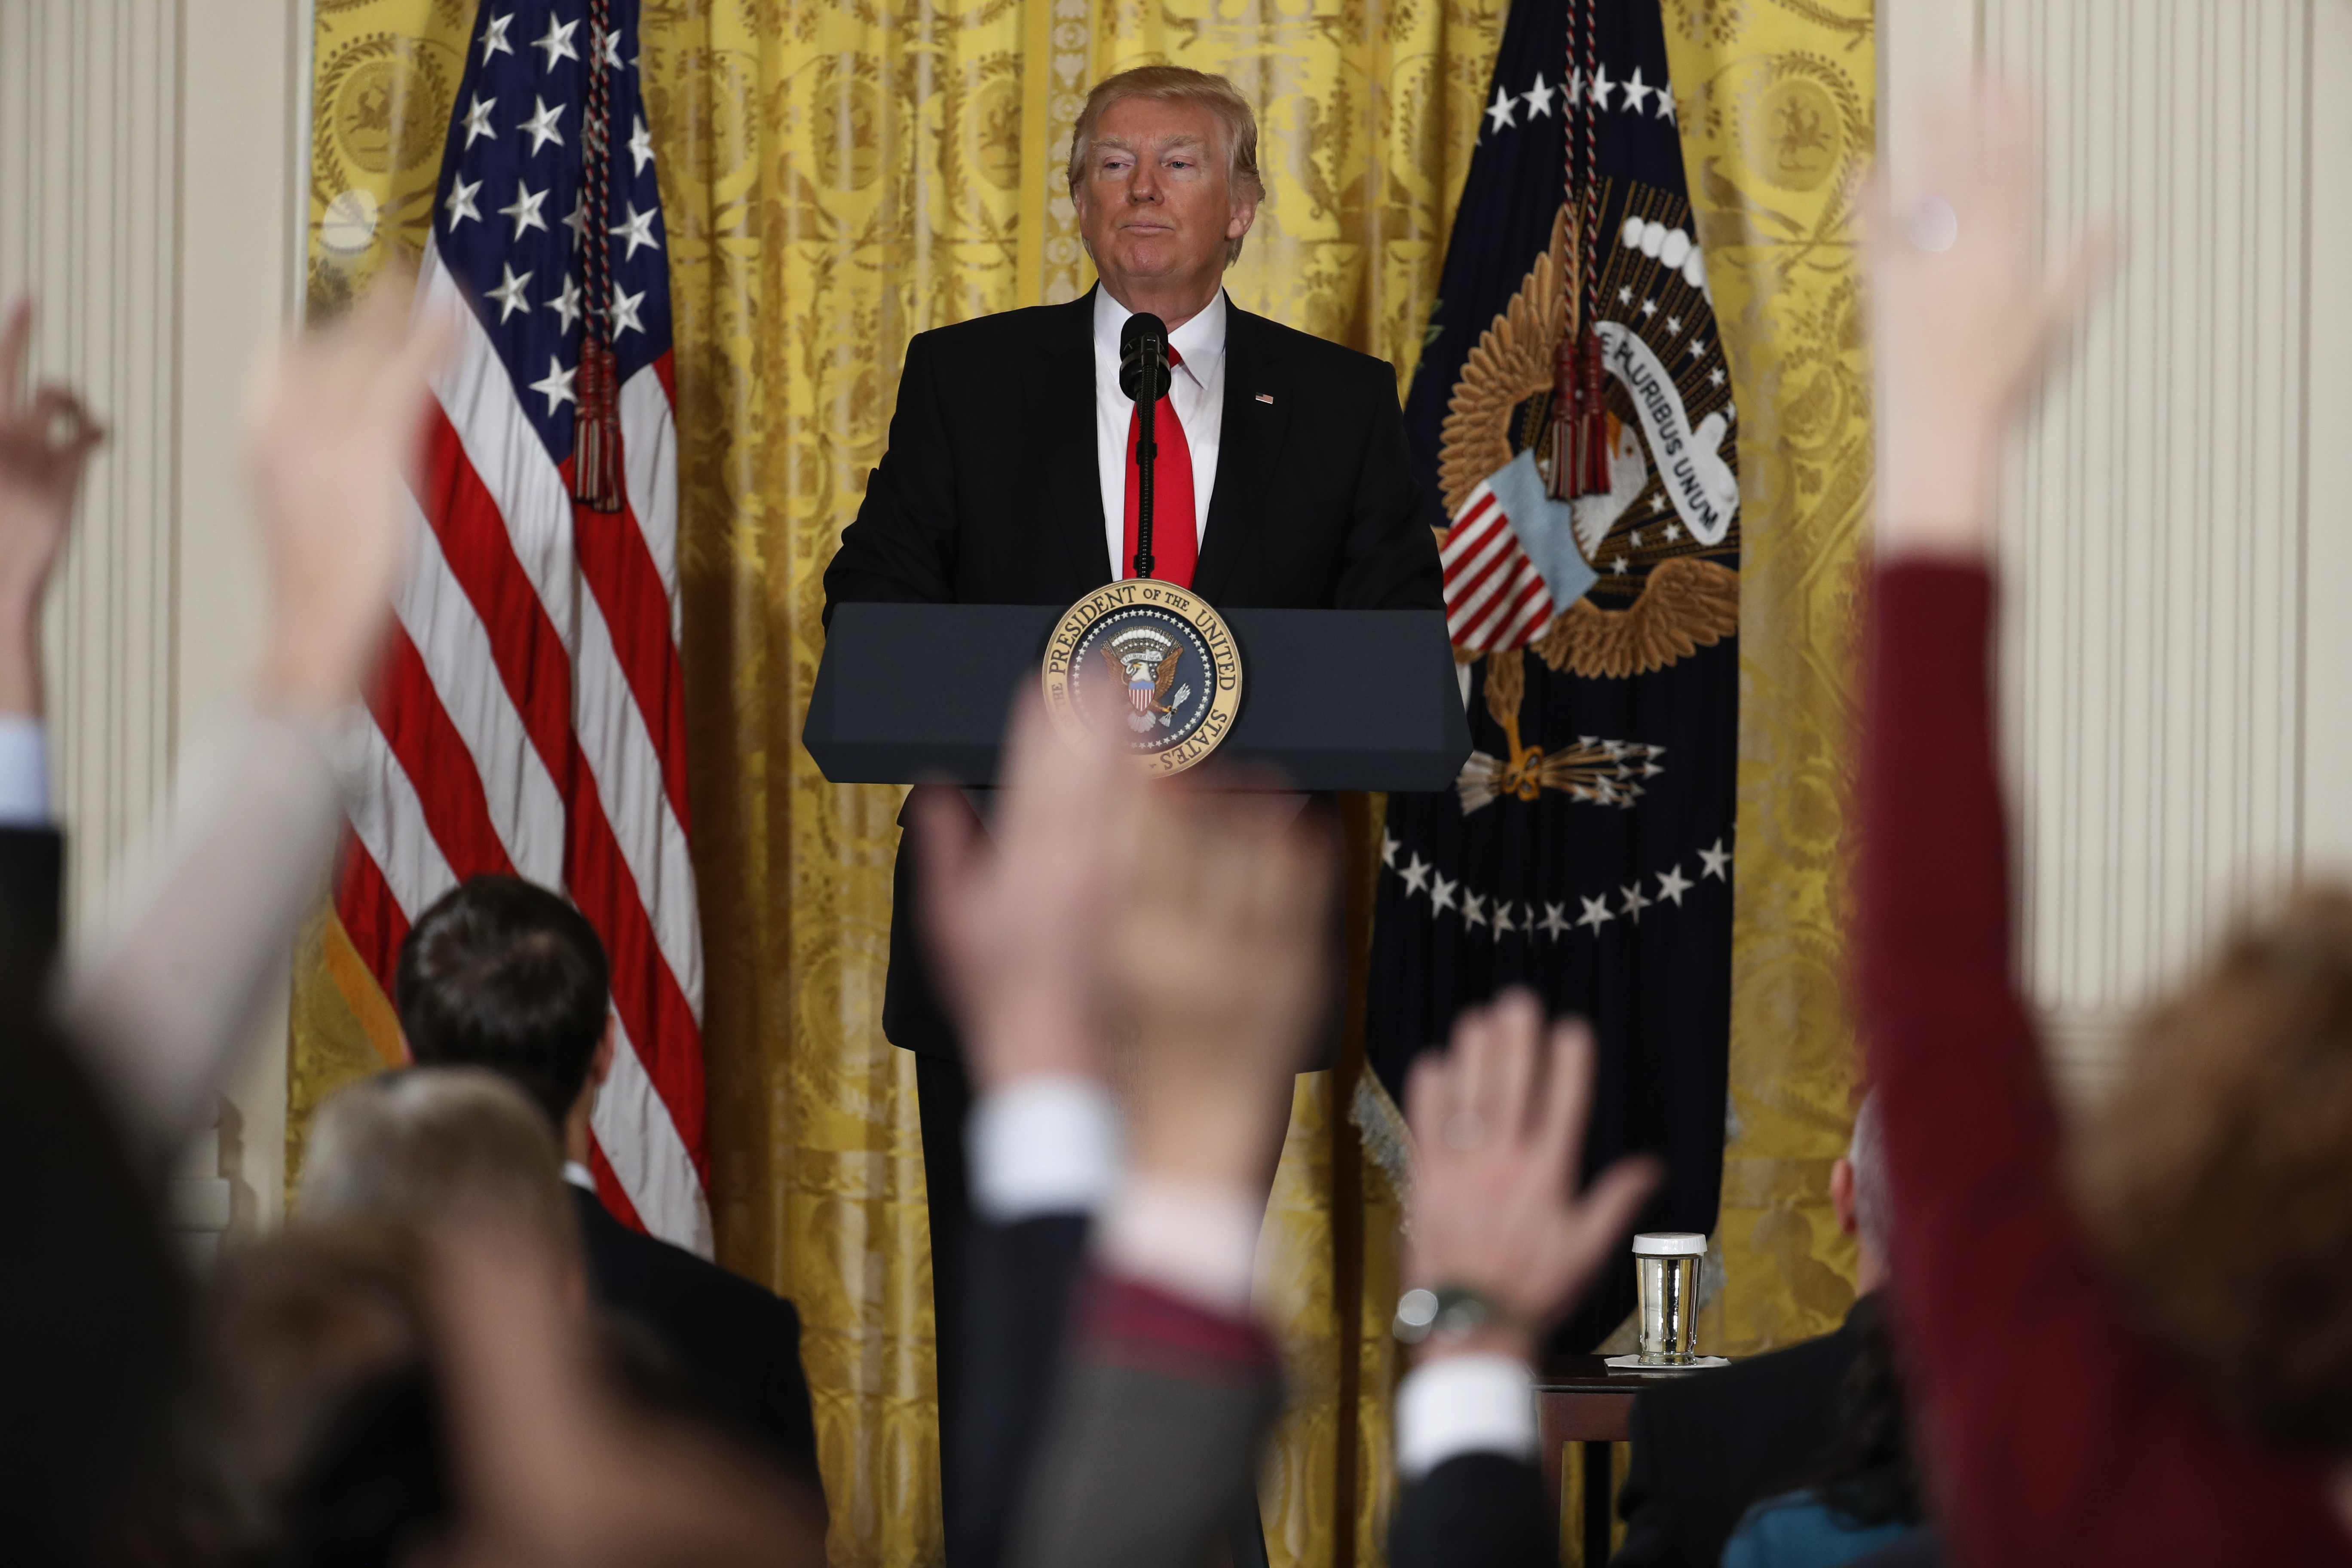 President Donald Trump looks at reporters during a news conference in the East Room of the White House in Washington, Feb. 16, 2017.